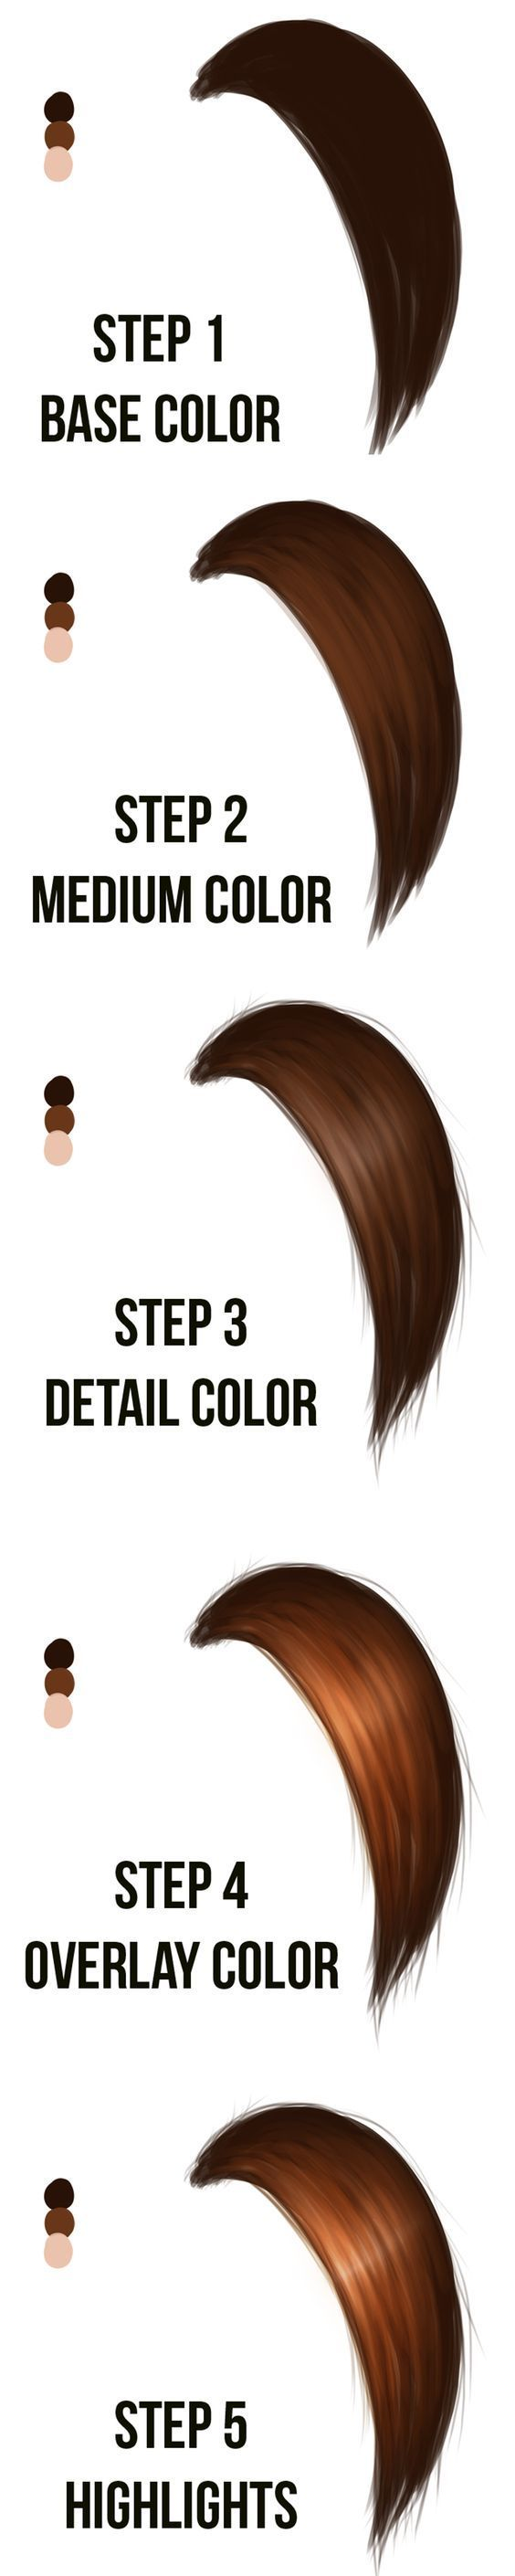 Sketch Hair Digital Art Illustration Painting Tutorial Tips Are Not Software Specific And Ar Digital Art Tutorial Digital Art Illustration Art Tutorials